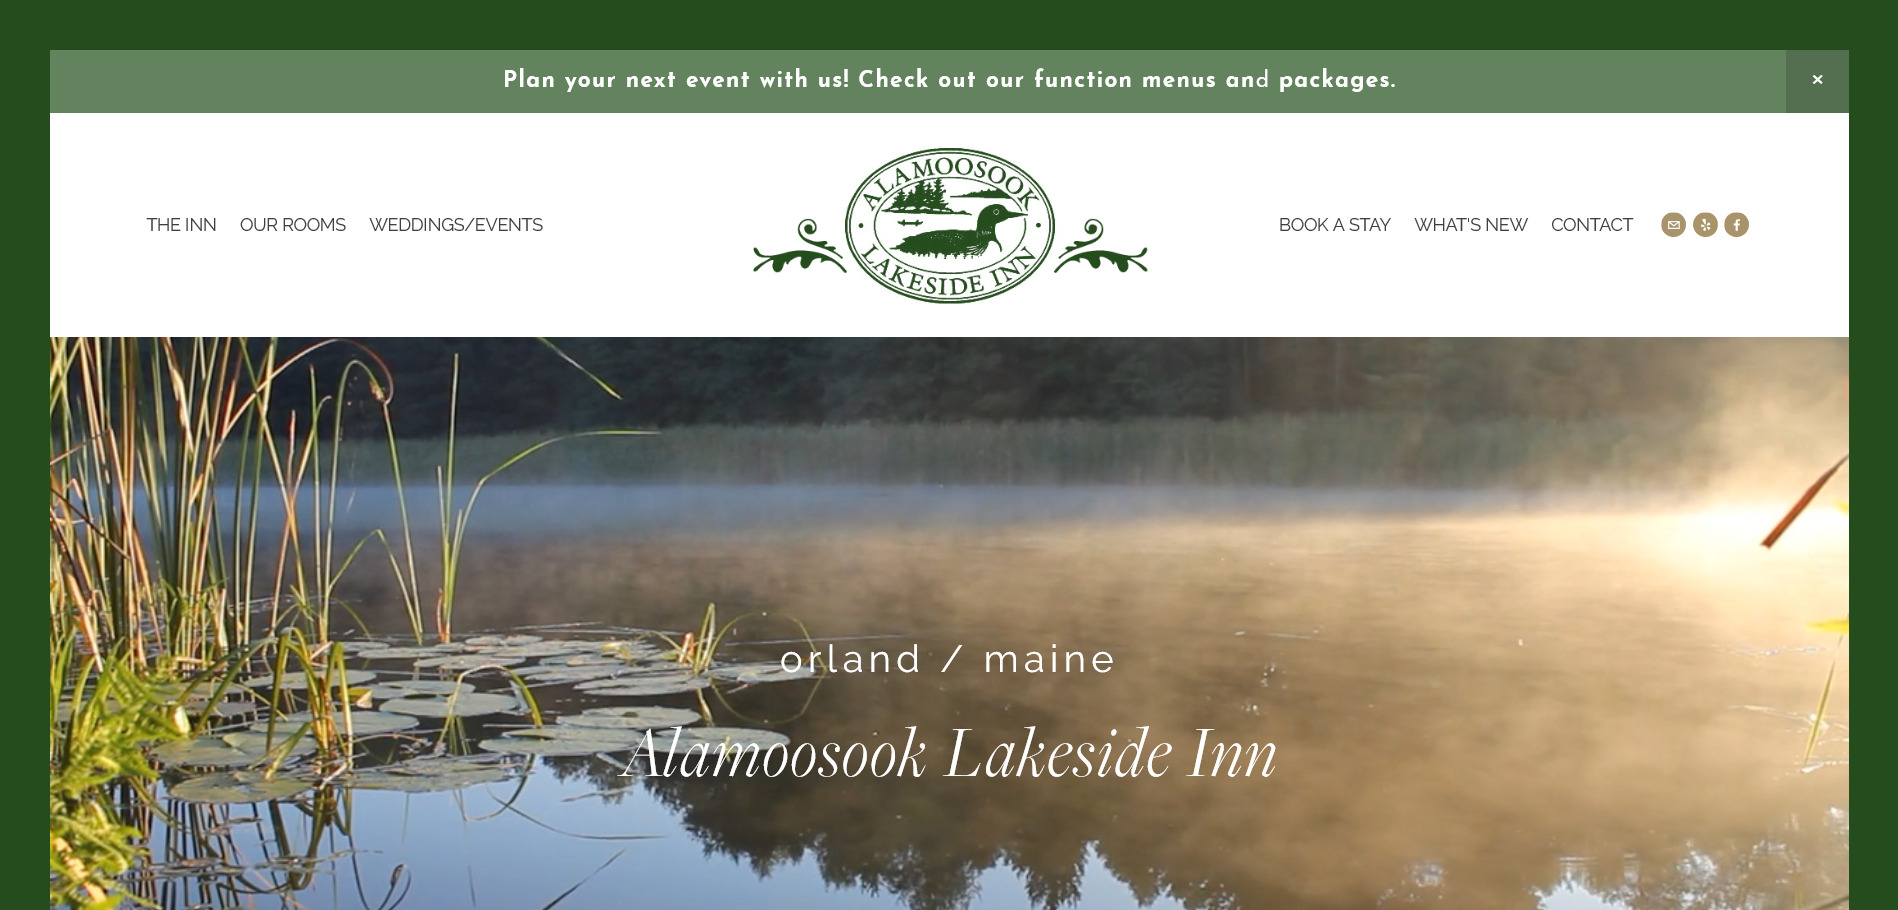 Alamoosook Lakeside Inn